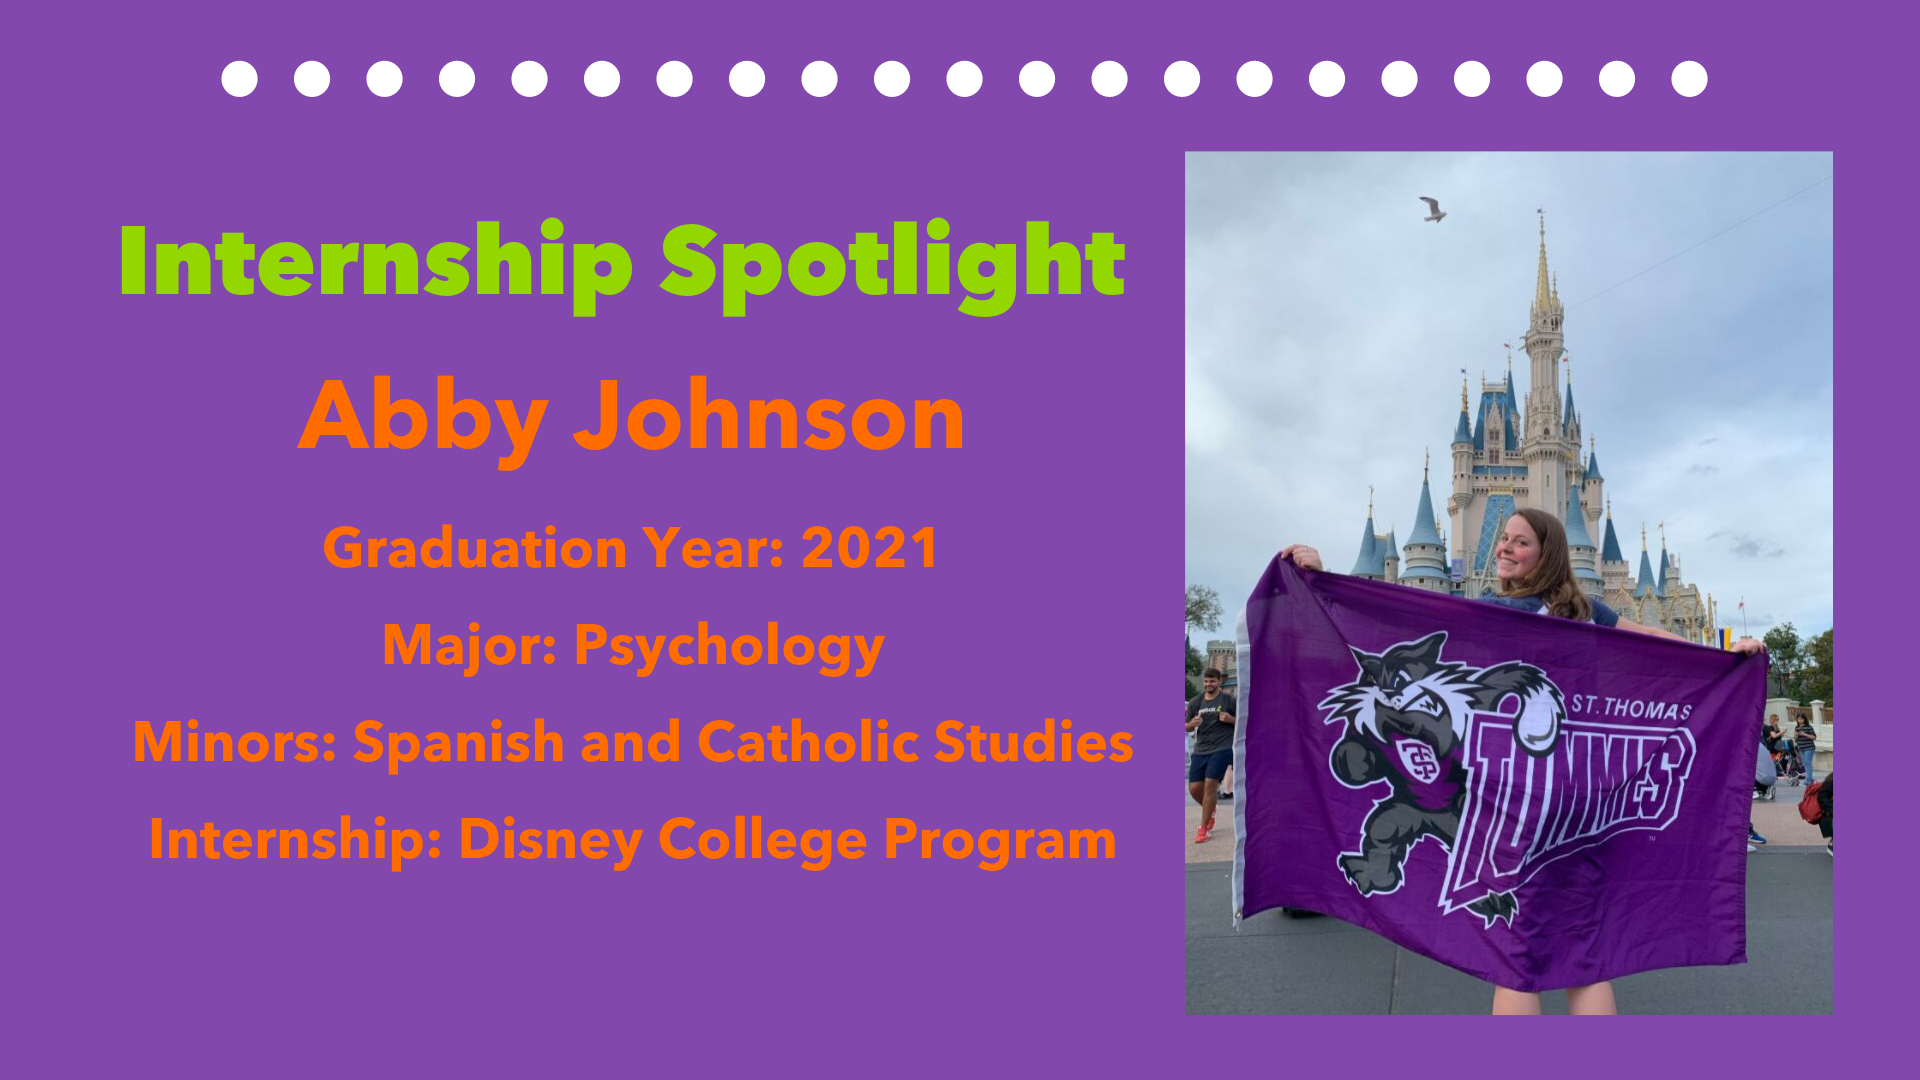 Internship Spotlight - abby johnson